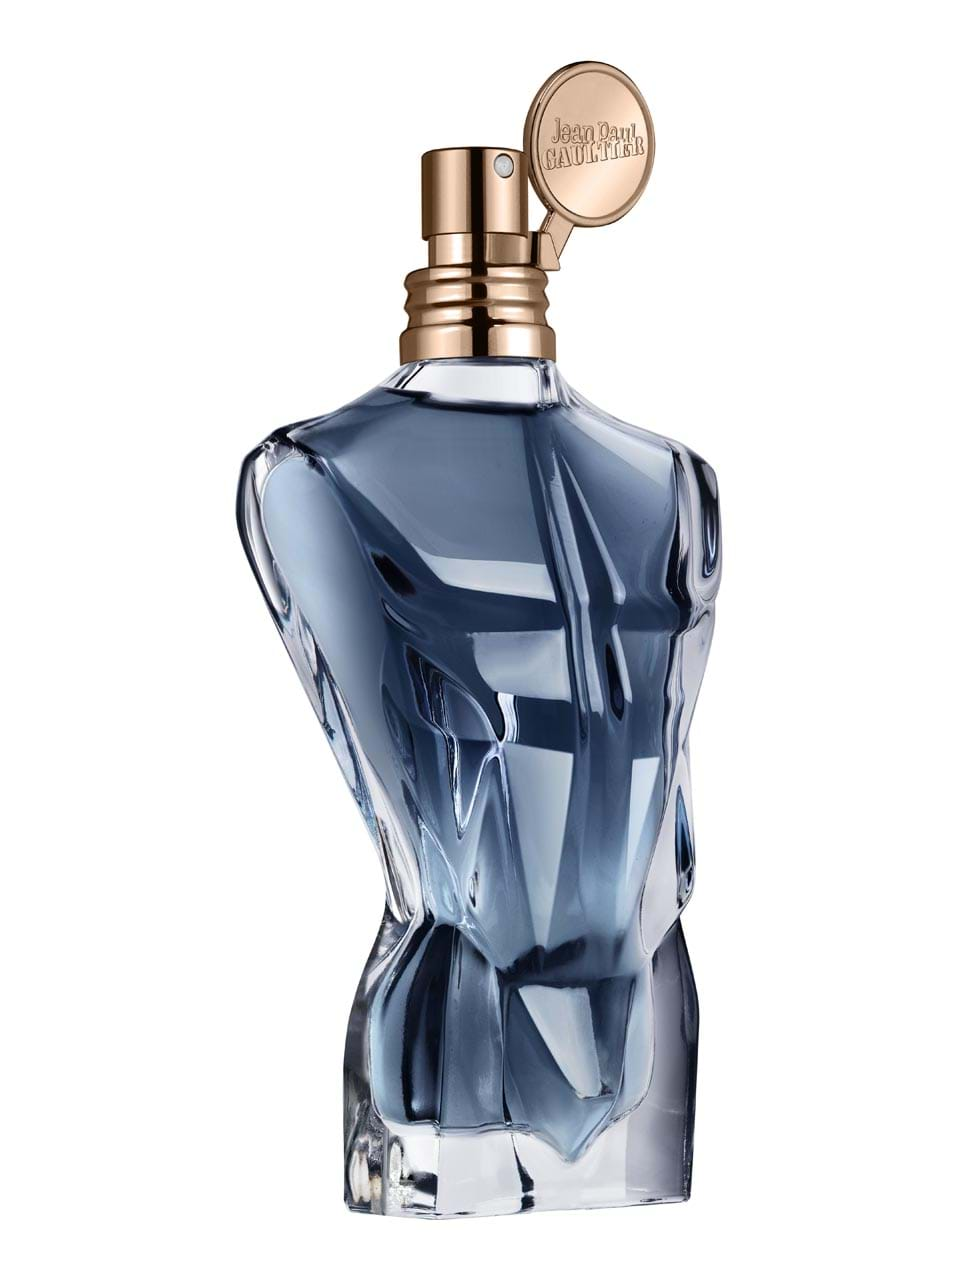 Paul Parfum 125 Le Ml Male Essence De Jean Gaultier roeCBdx